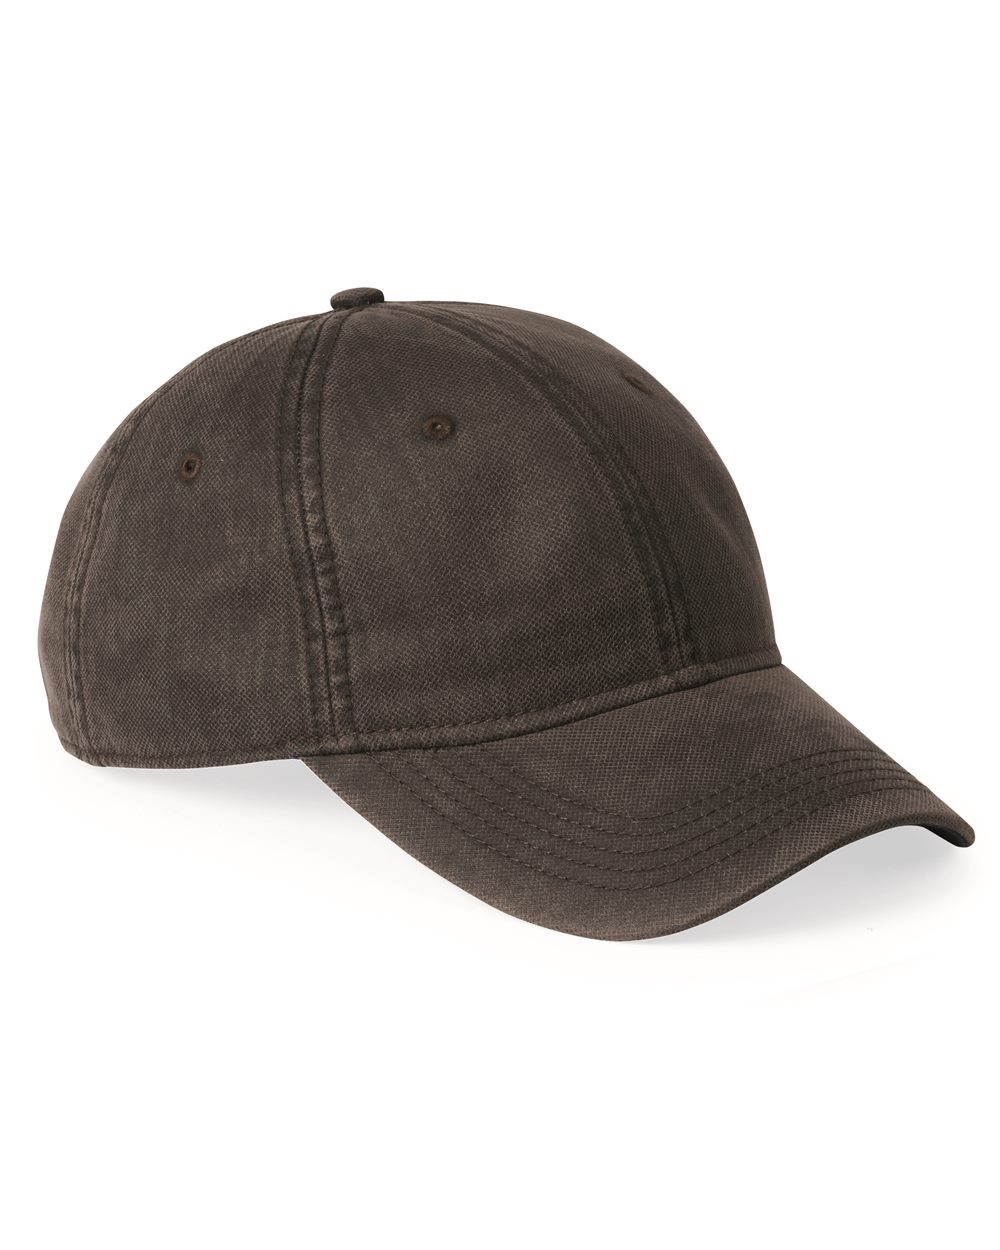 DRI DUCK 3749 - Landmark Weathered Cotton Twill Cap